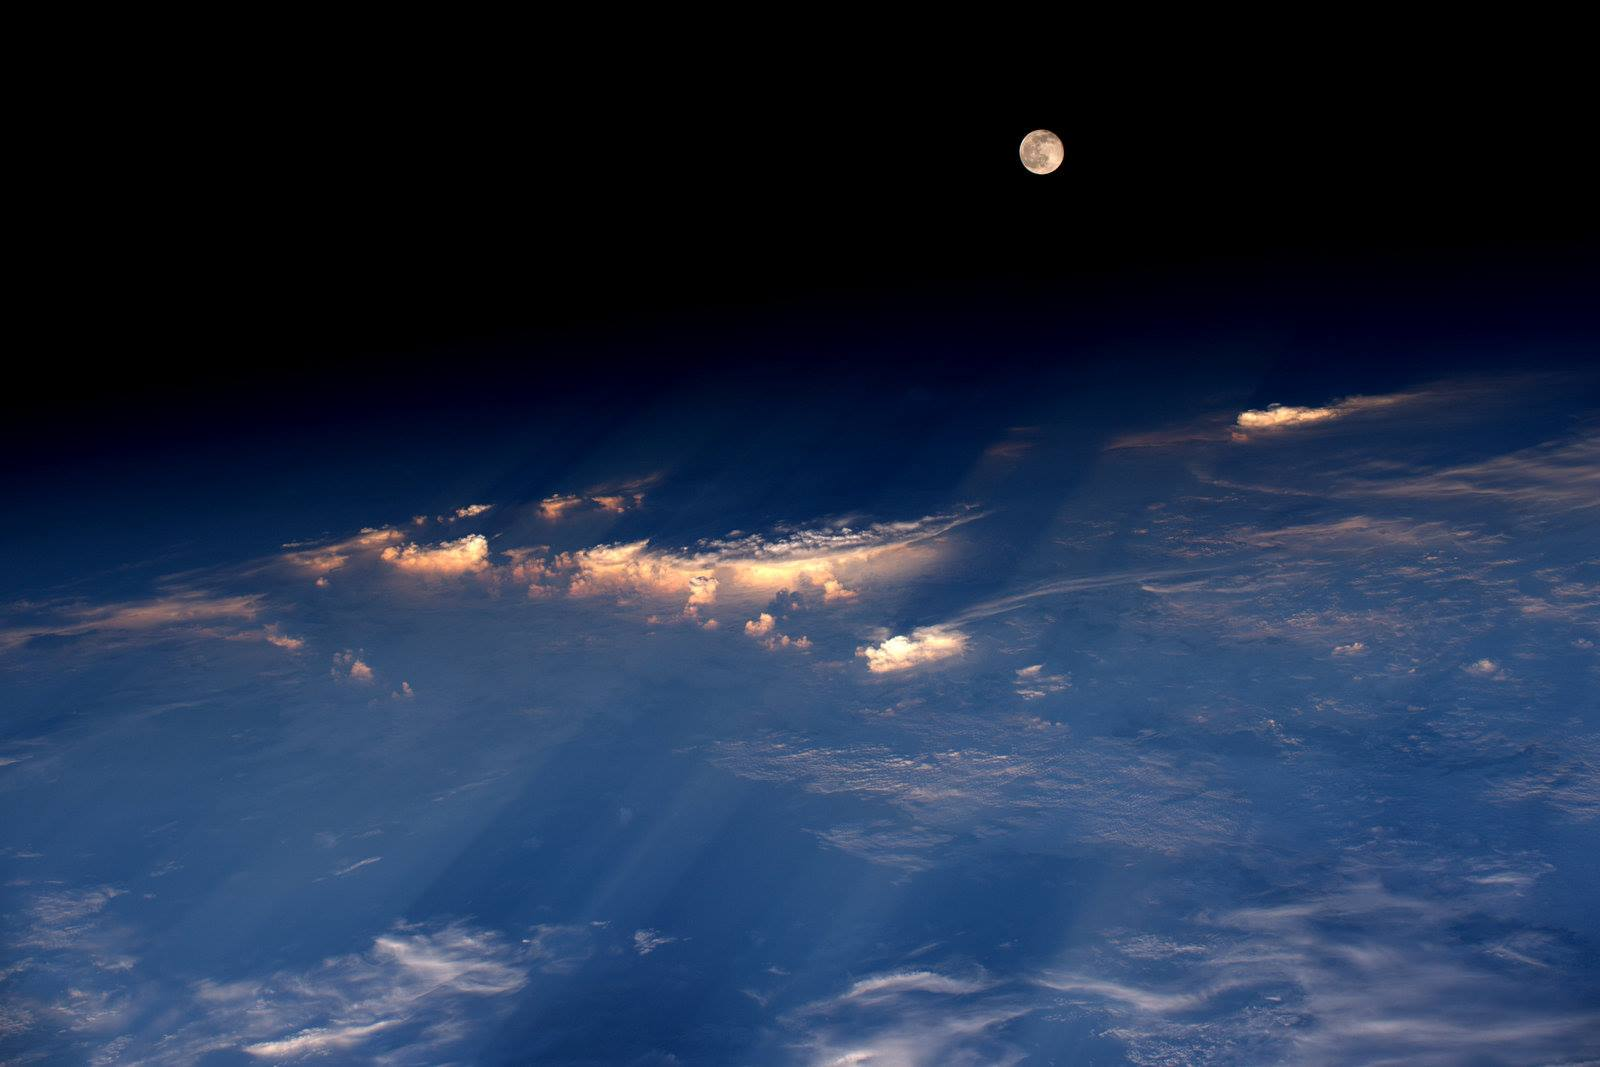 The Most Amazing Space Photos This Week!